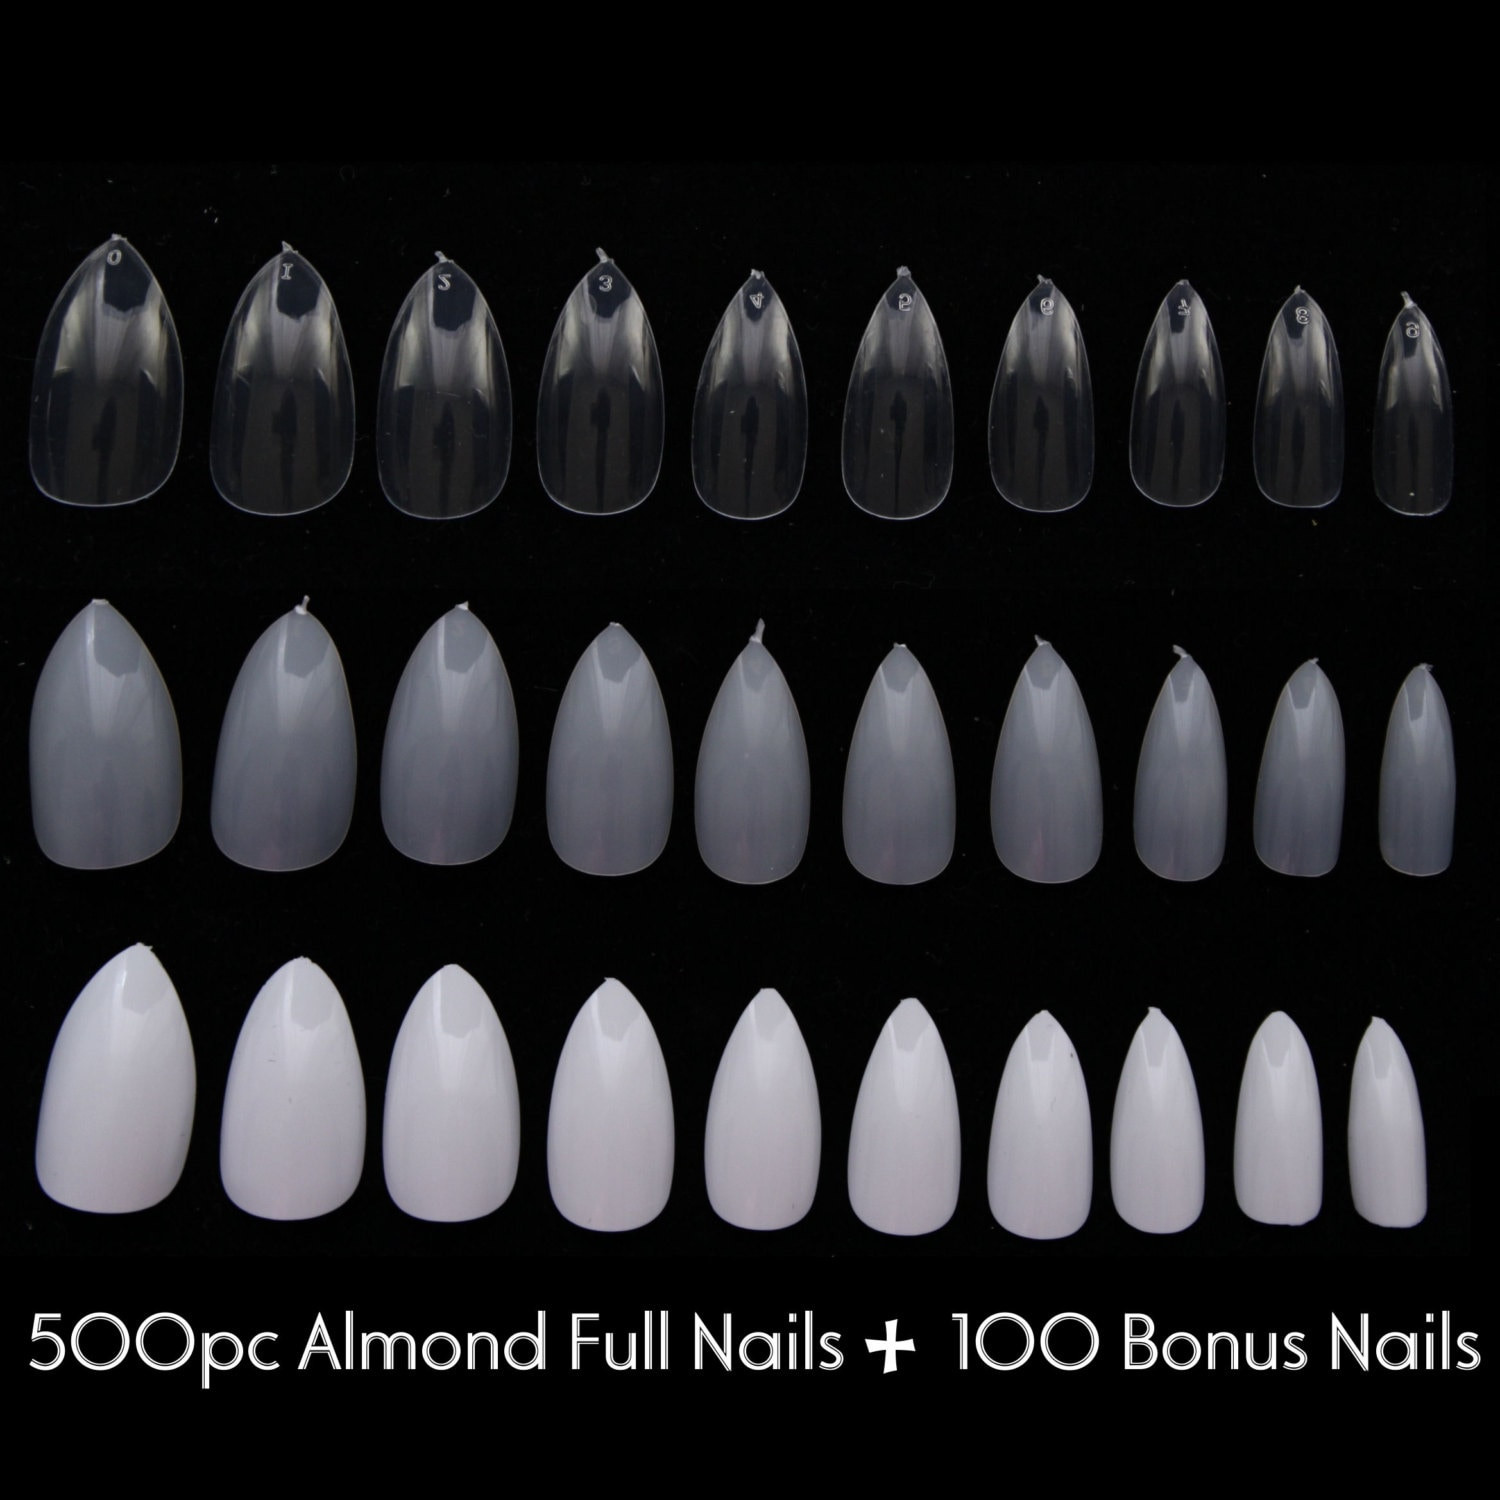 600pc Almond Nail Shape Oval Stiletto Full Cover False Tips ...